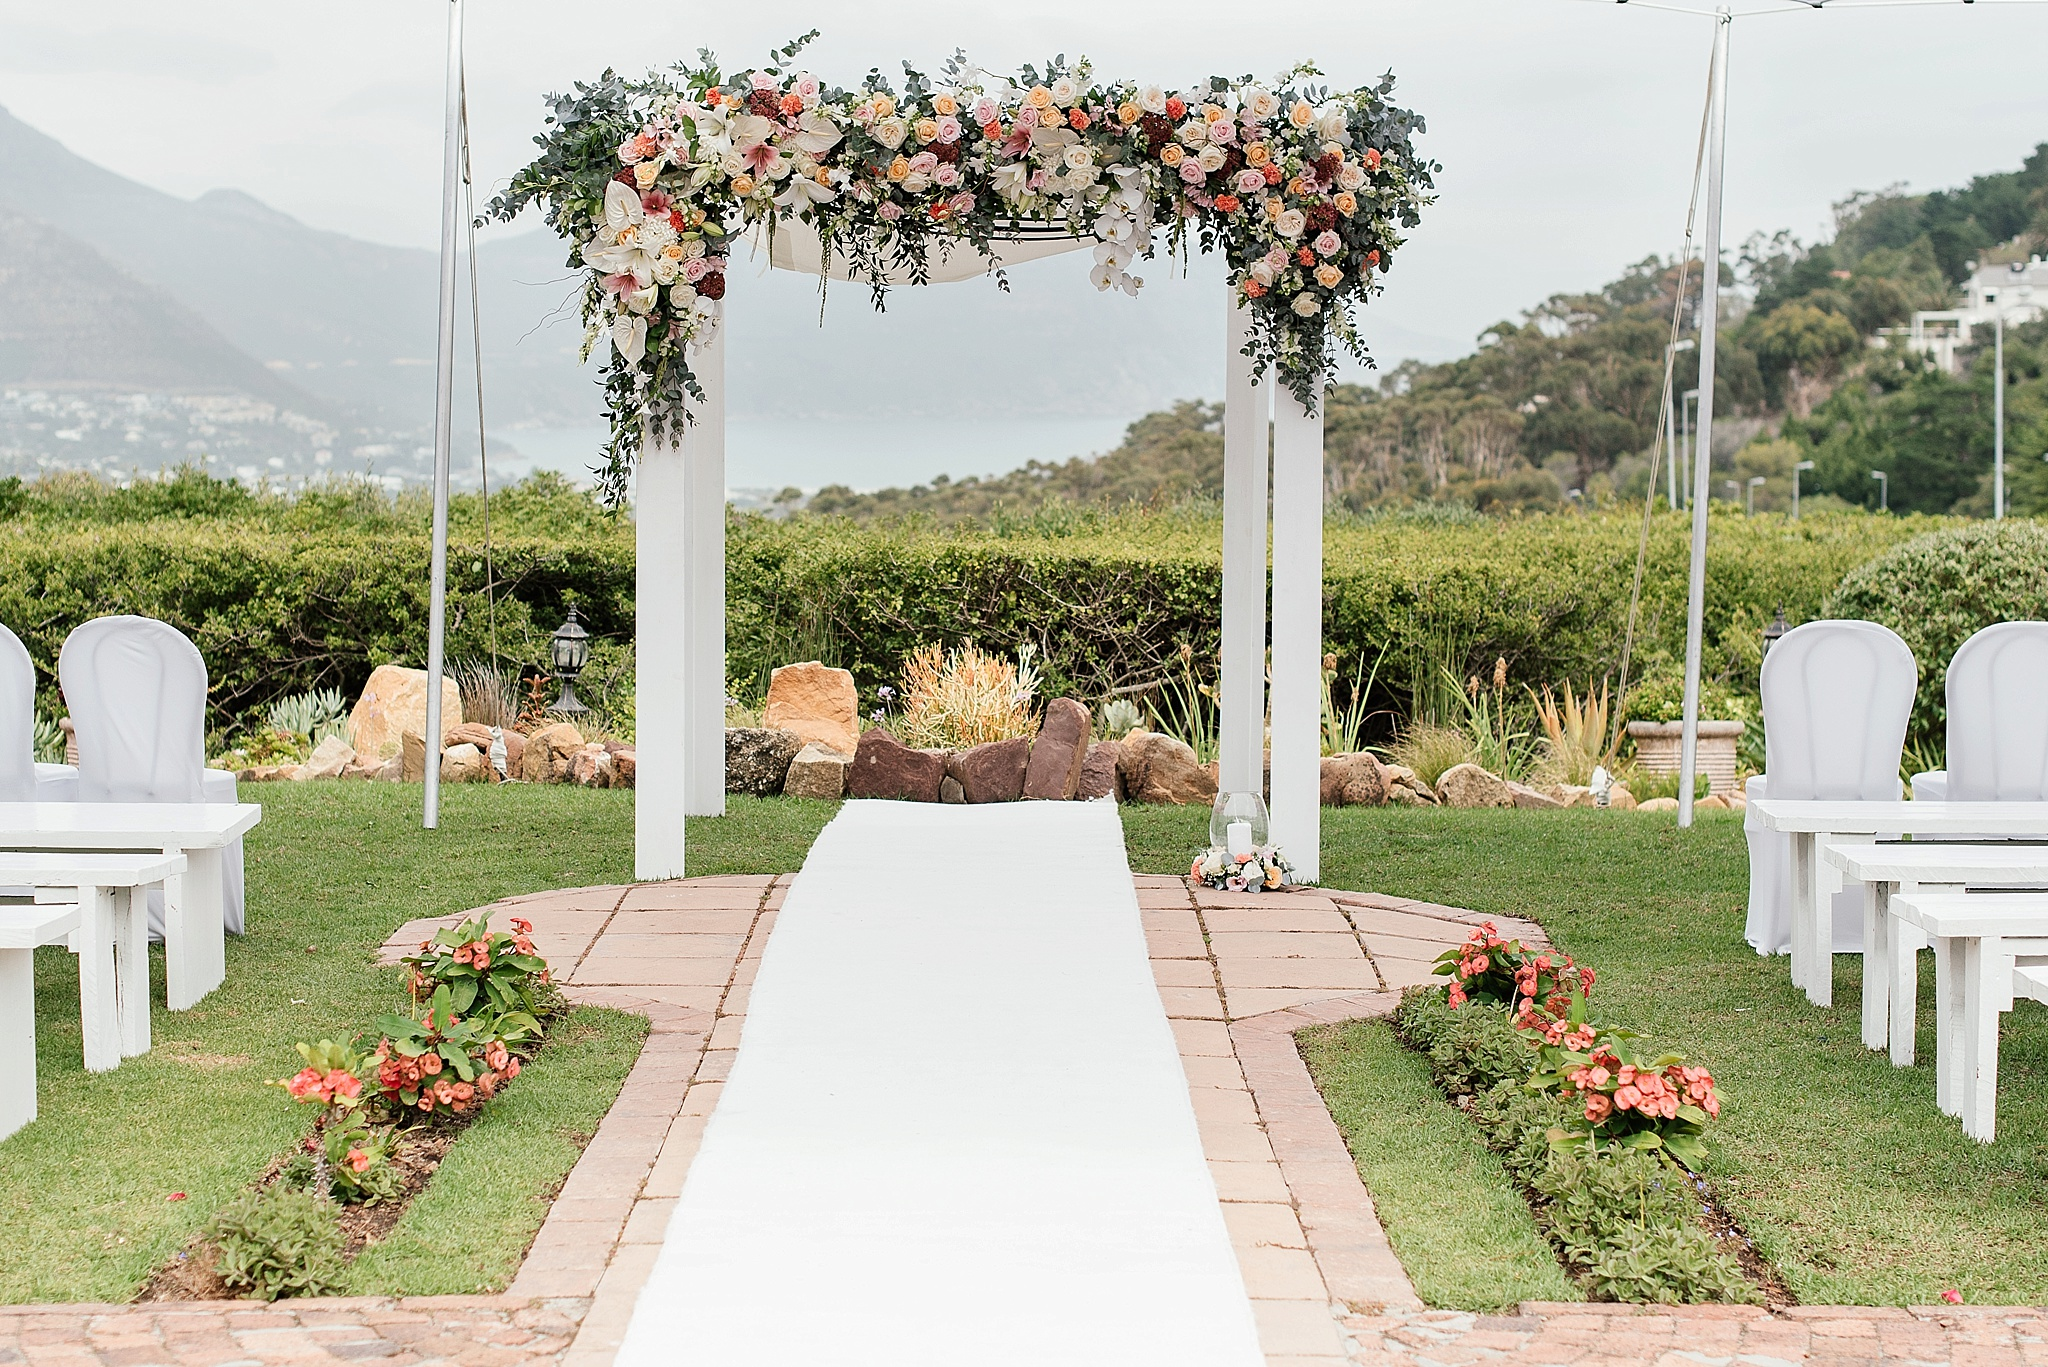 Cape Town Wedding Photographer Darren Bester - SuikerBossie - Stephen and Mikaela_0045.jpg